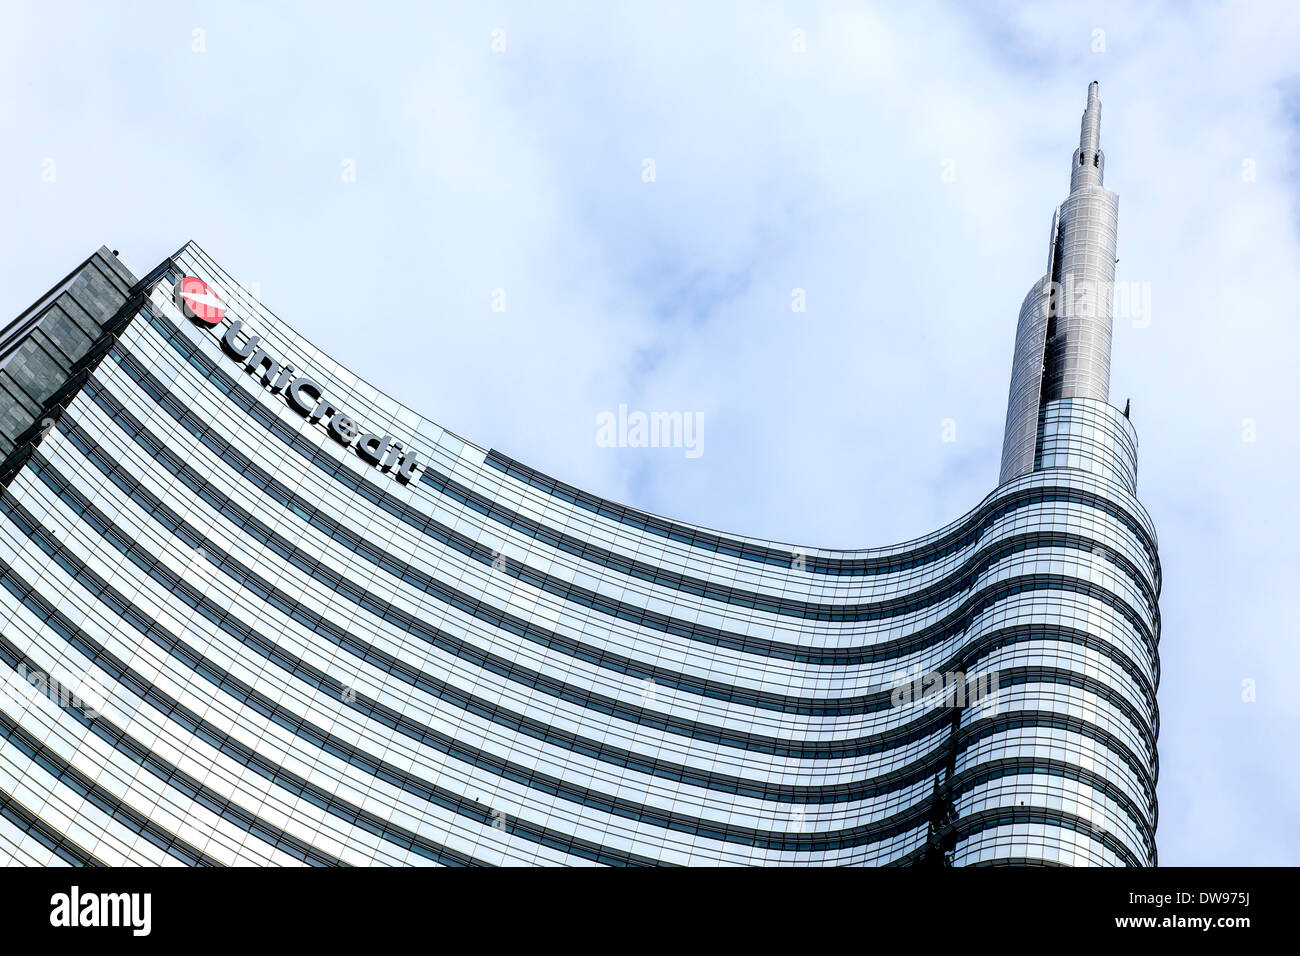 UniCredit Tower, headquarters of the Italian bank UniCredit, Milan, Lombardy, Italy - Stock Image